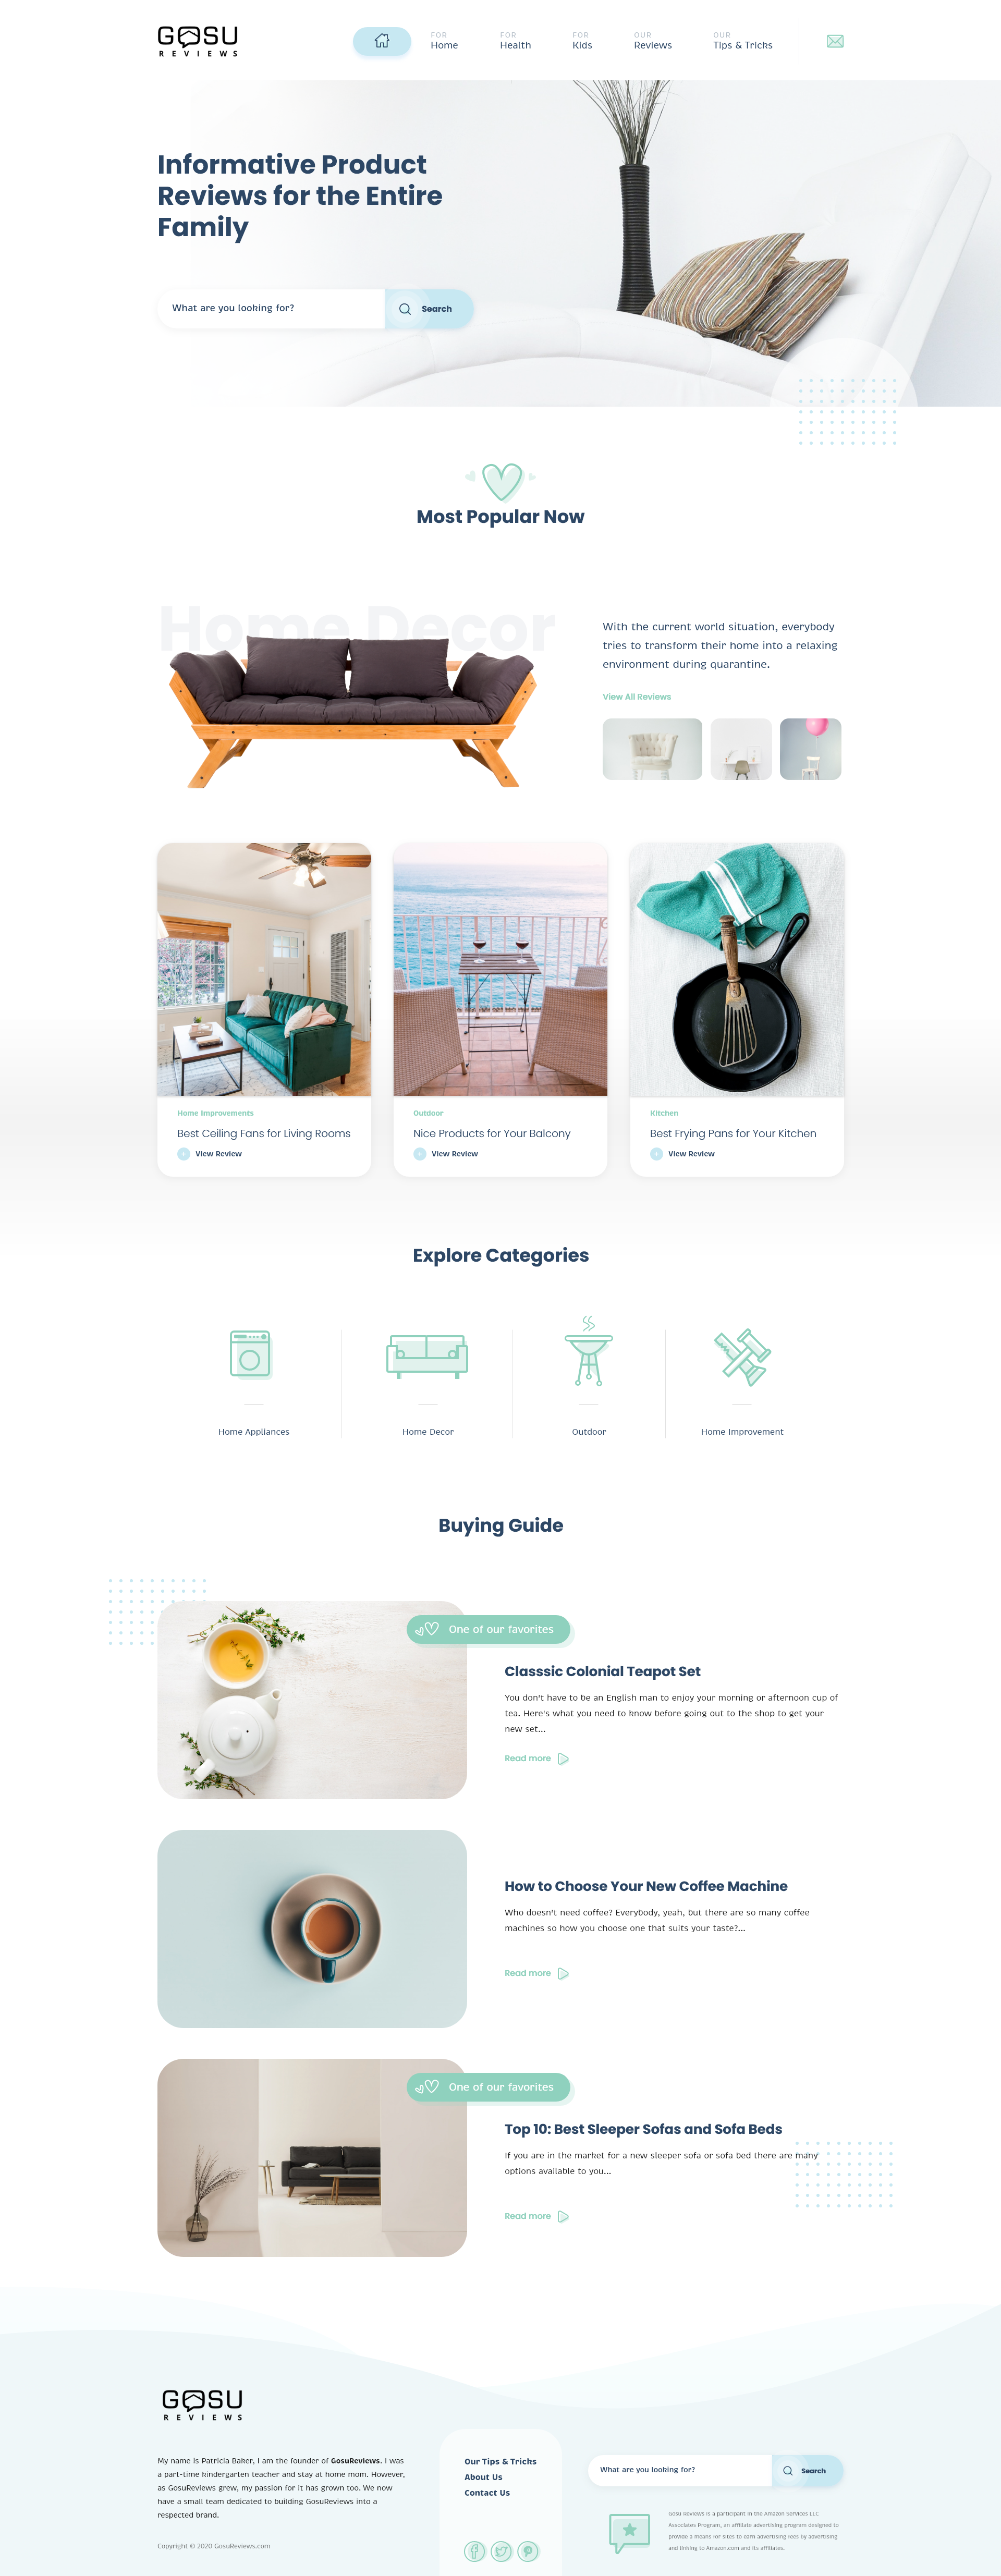 Creative Page Design For Home Reviews Company